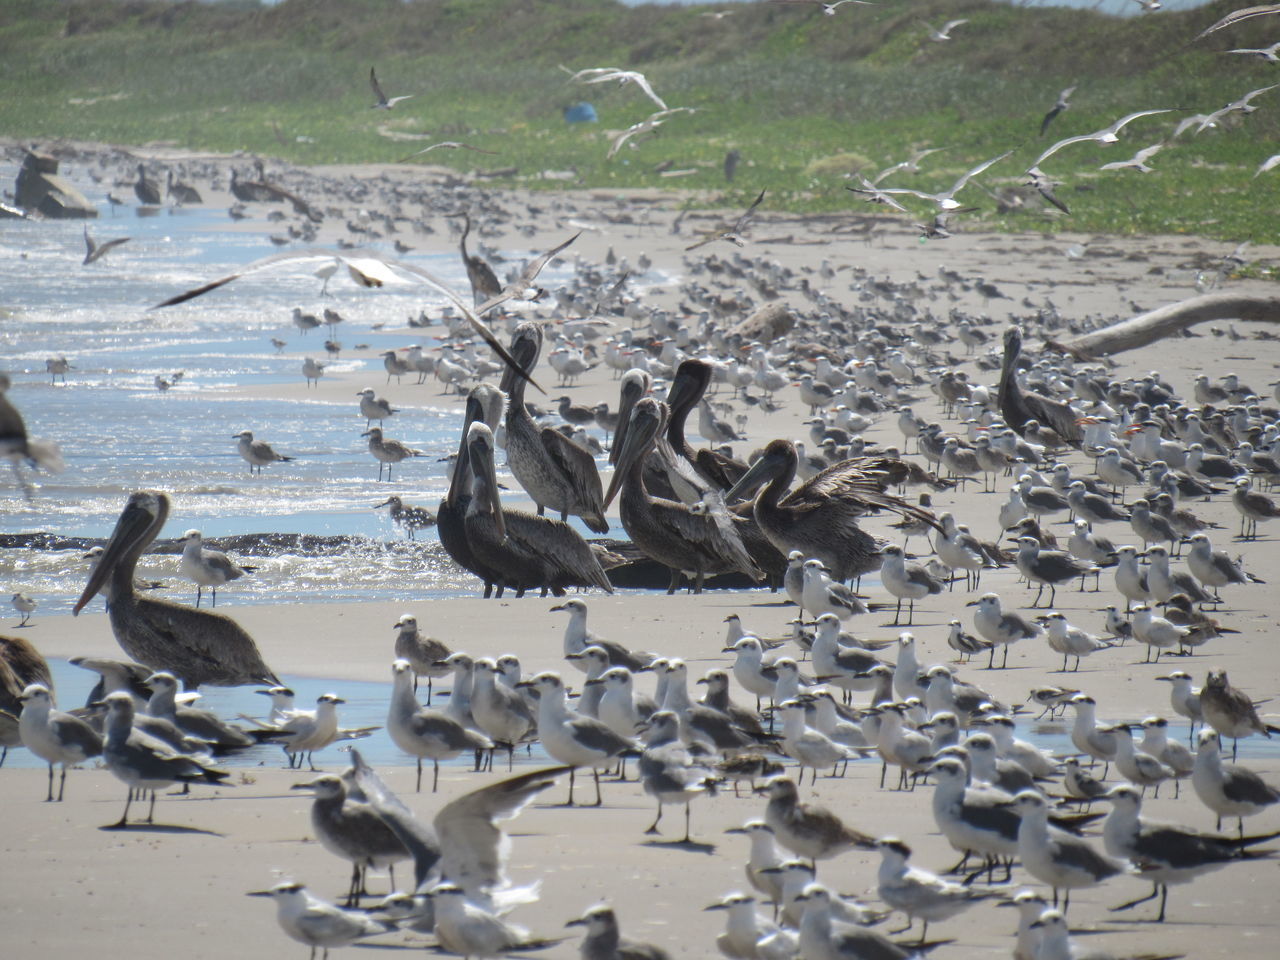 Lots of Birds Animals In The Wild Brown Pelican Coastline Cold Water Feathers Of A Bird Flock Of Birds Flying Birds Gulf Of Mexico Large And Small Large Group Of Birds Ocean View Perching And Hunting Sandy Shoreline Seagulls Seashore Standing Birds Zoology